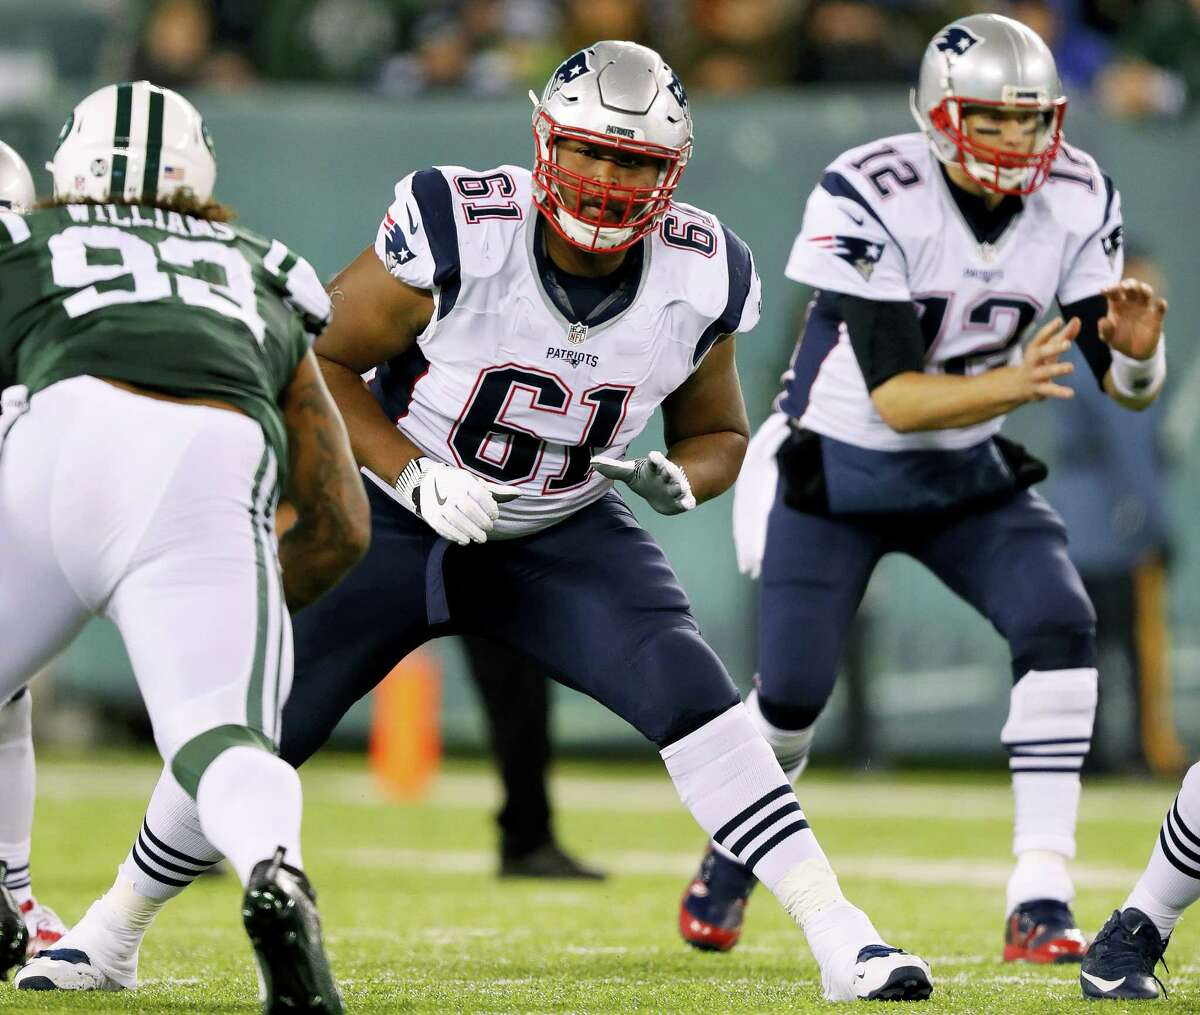 New England Patriots offensive tackle Marcus Cannon blocks against the New York Jets during an NFL football game at MetLife Stadium in East Rutherford, N.J. Sunday, Nov. 17, 2016.